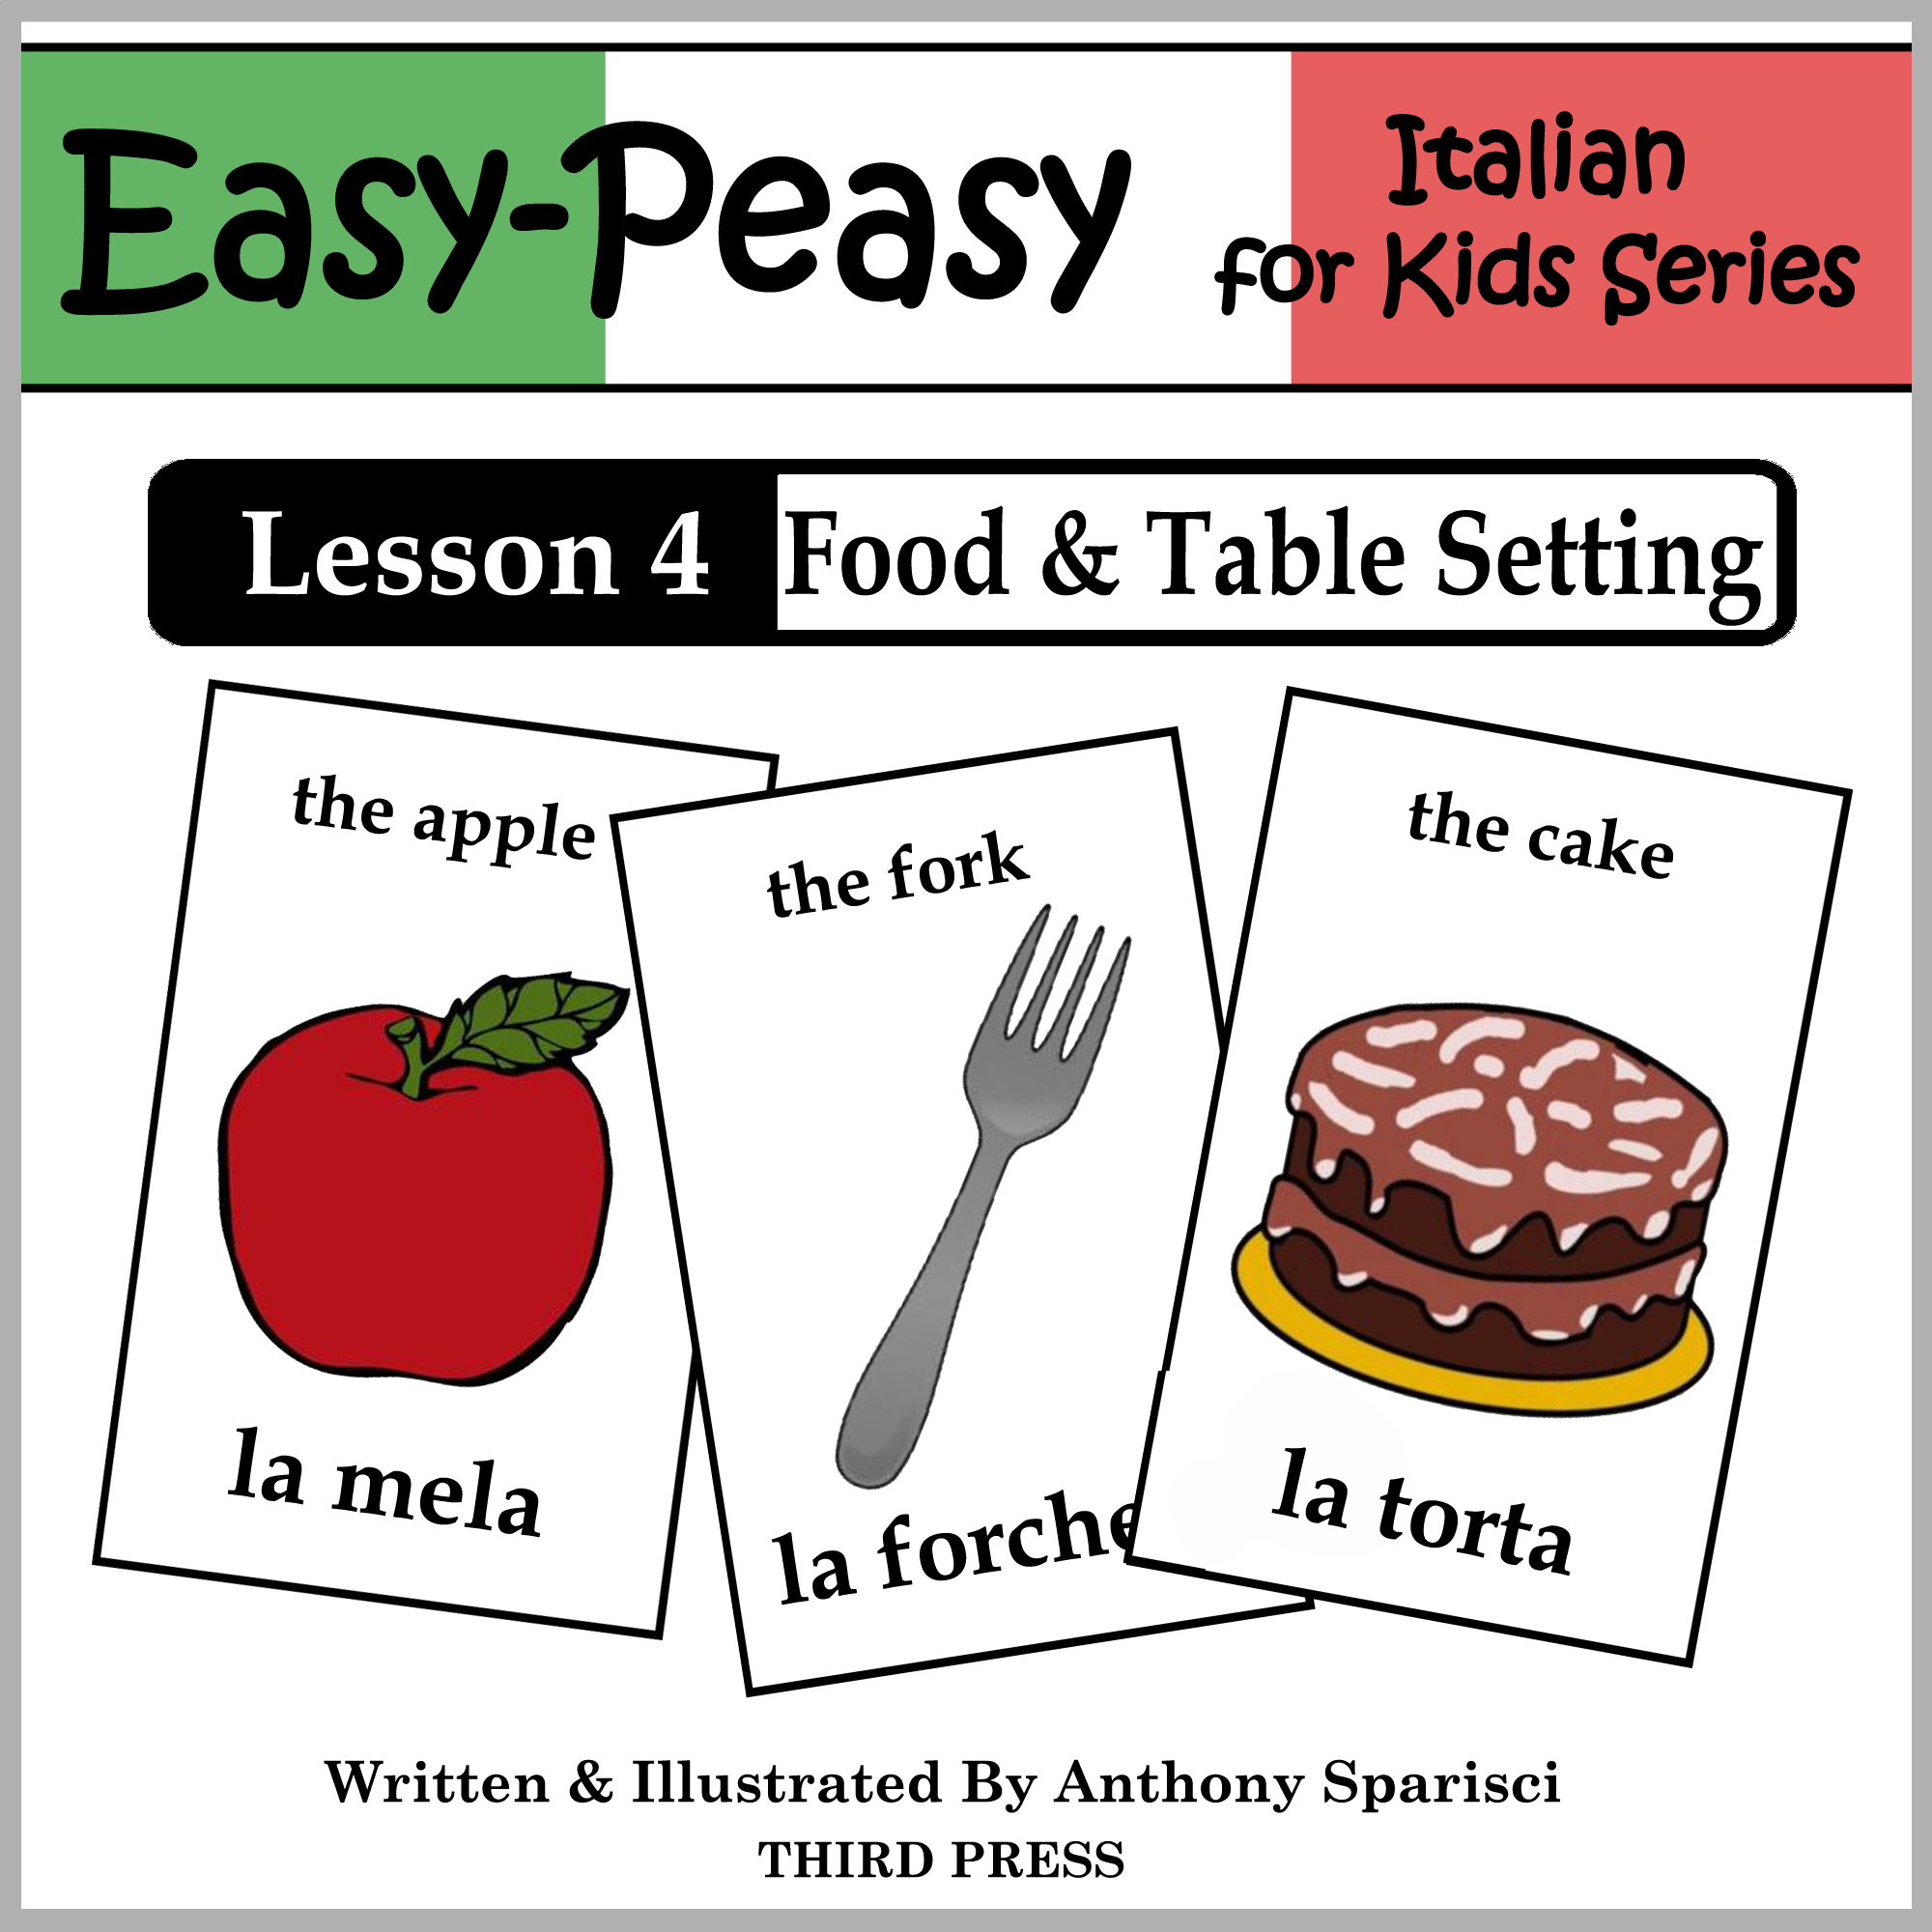 Italian Lesson 4: Food & Table Setting